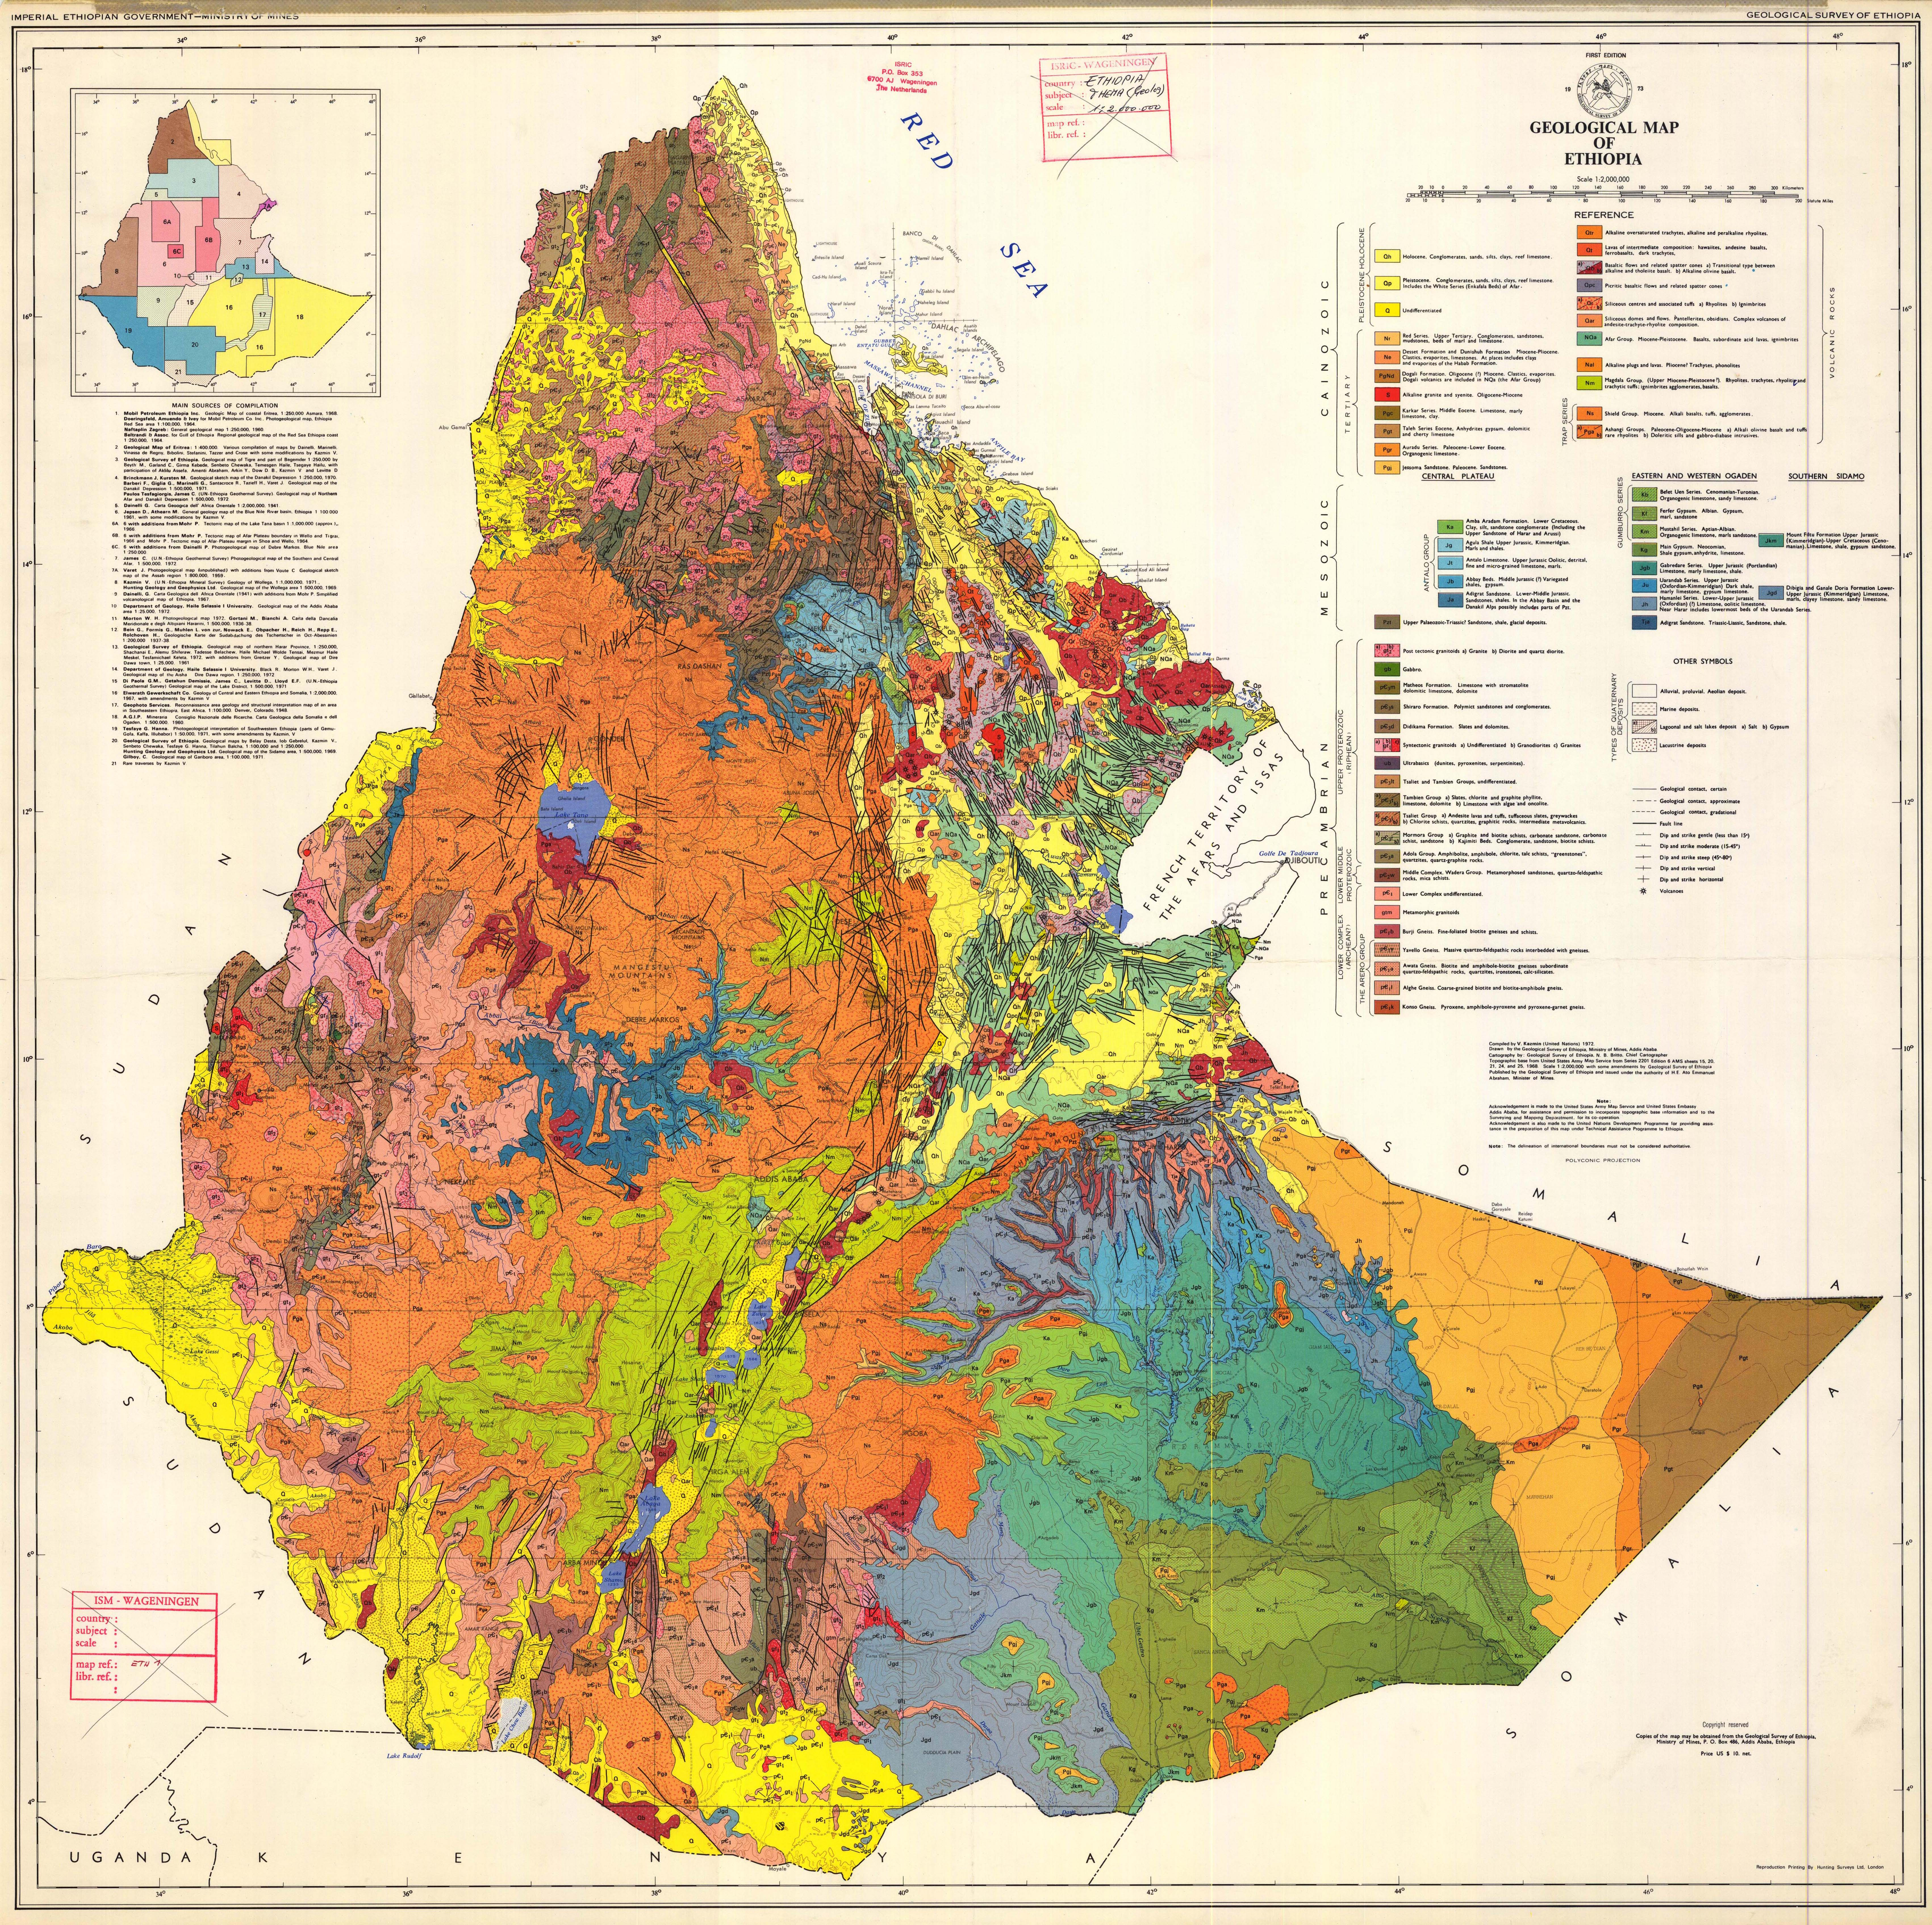 Geological map of Ethiopia. - ESDAC - European Commission